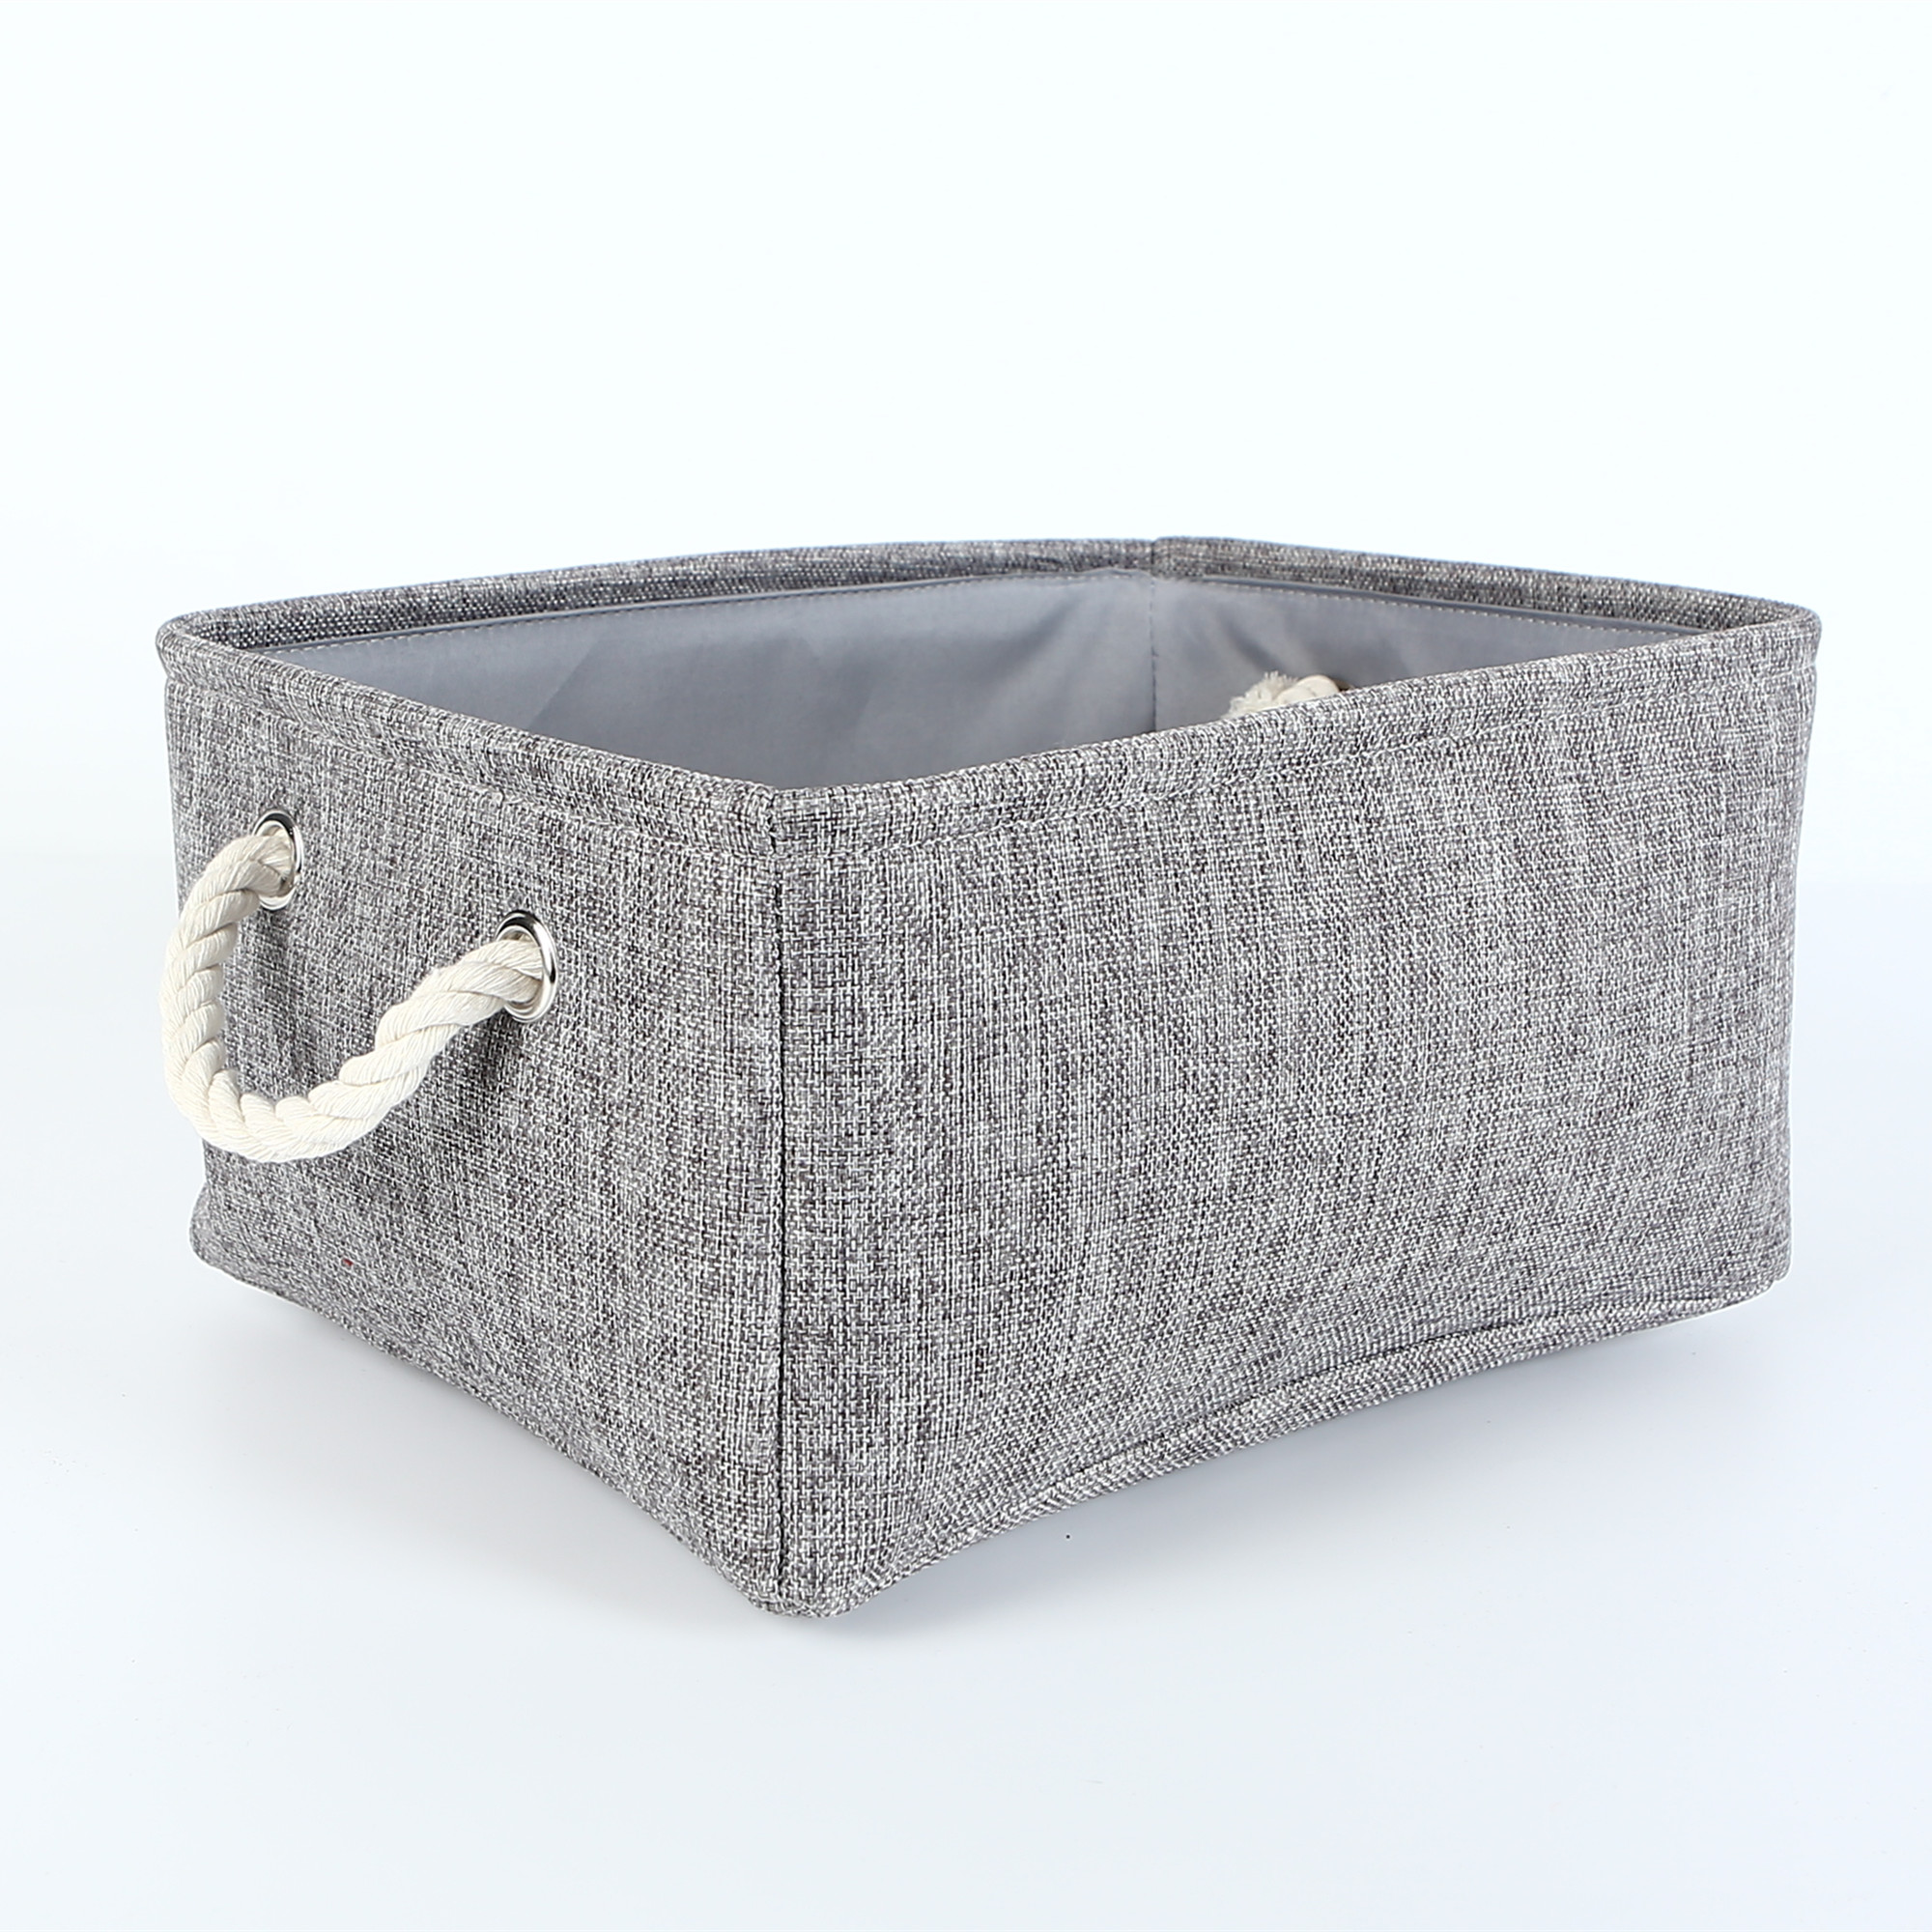 collapsible rectangular fabric storage bin organizer basket with handles for clothes storagetoy organizer